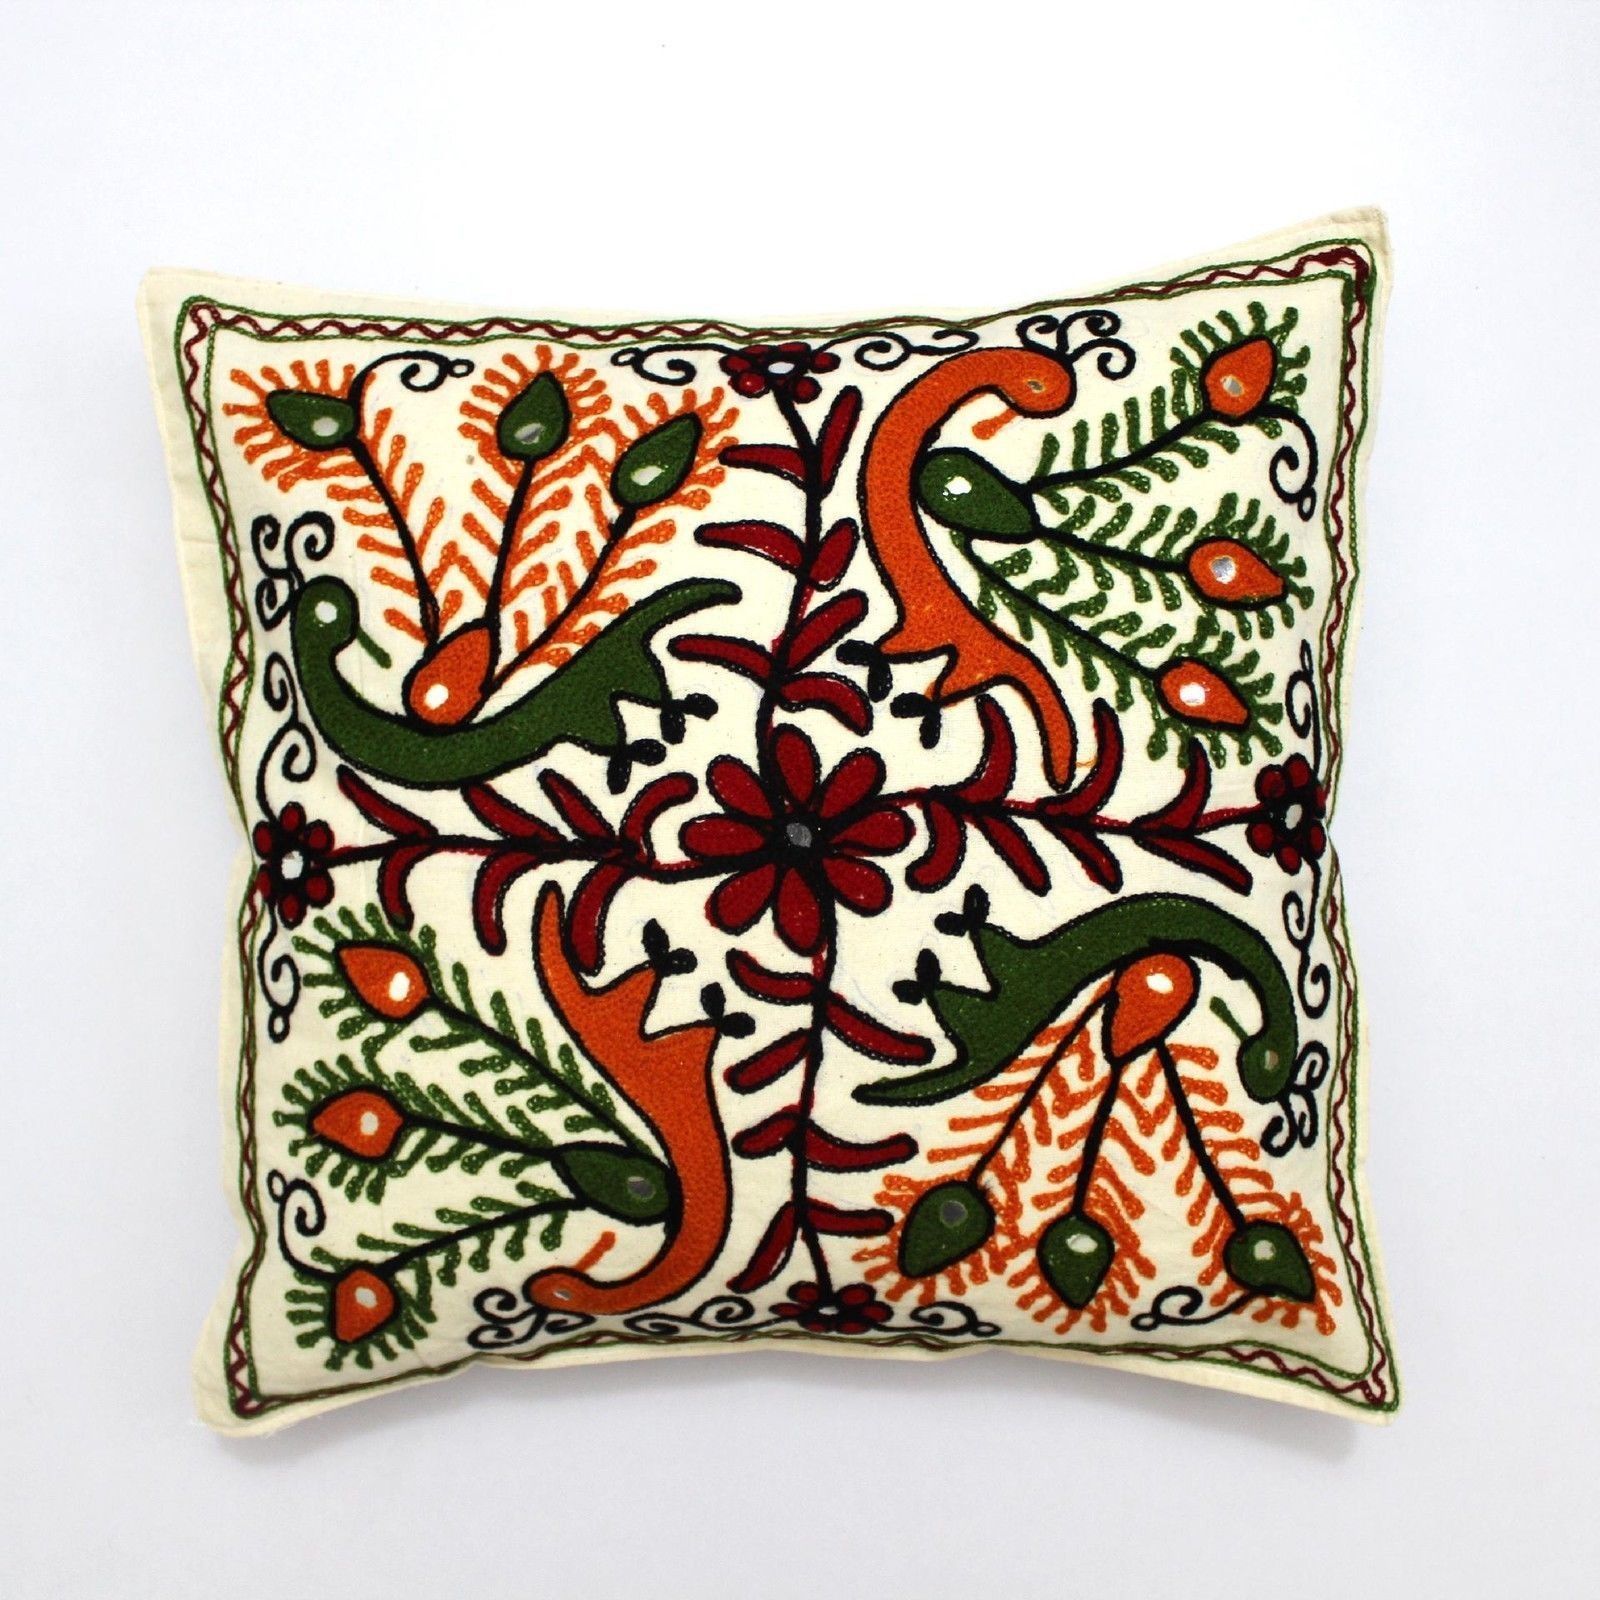 Suzani home decor tropical ethnic indian pillow sham couch cushion